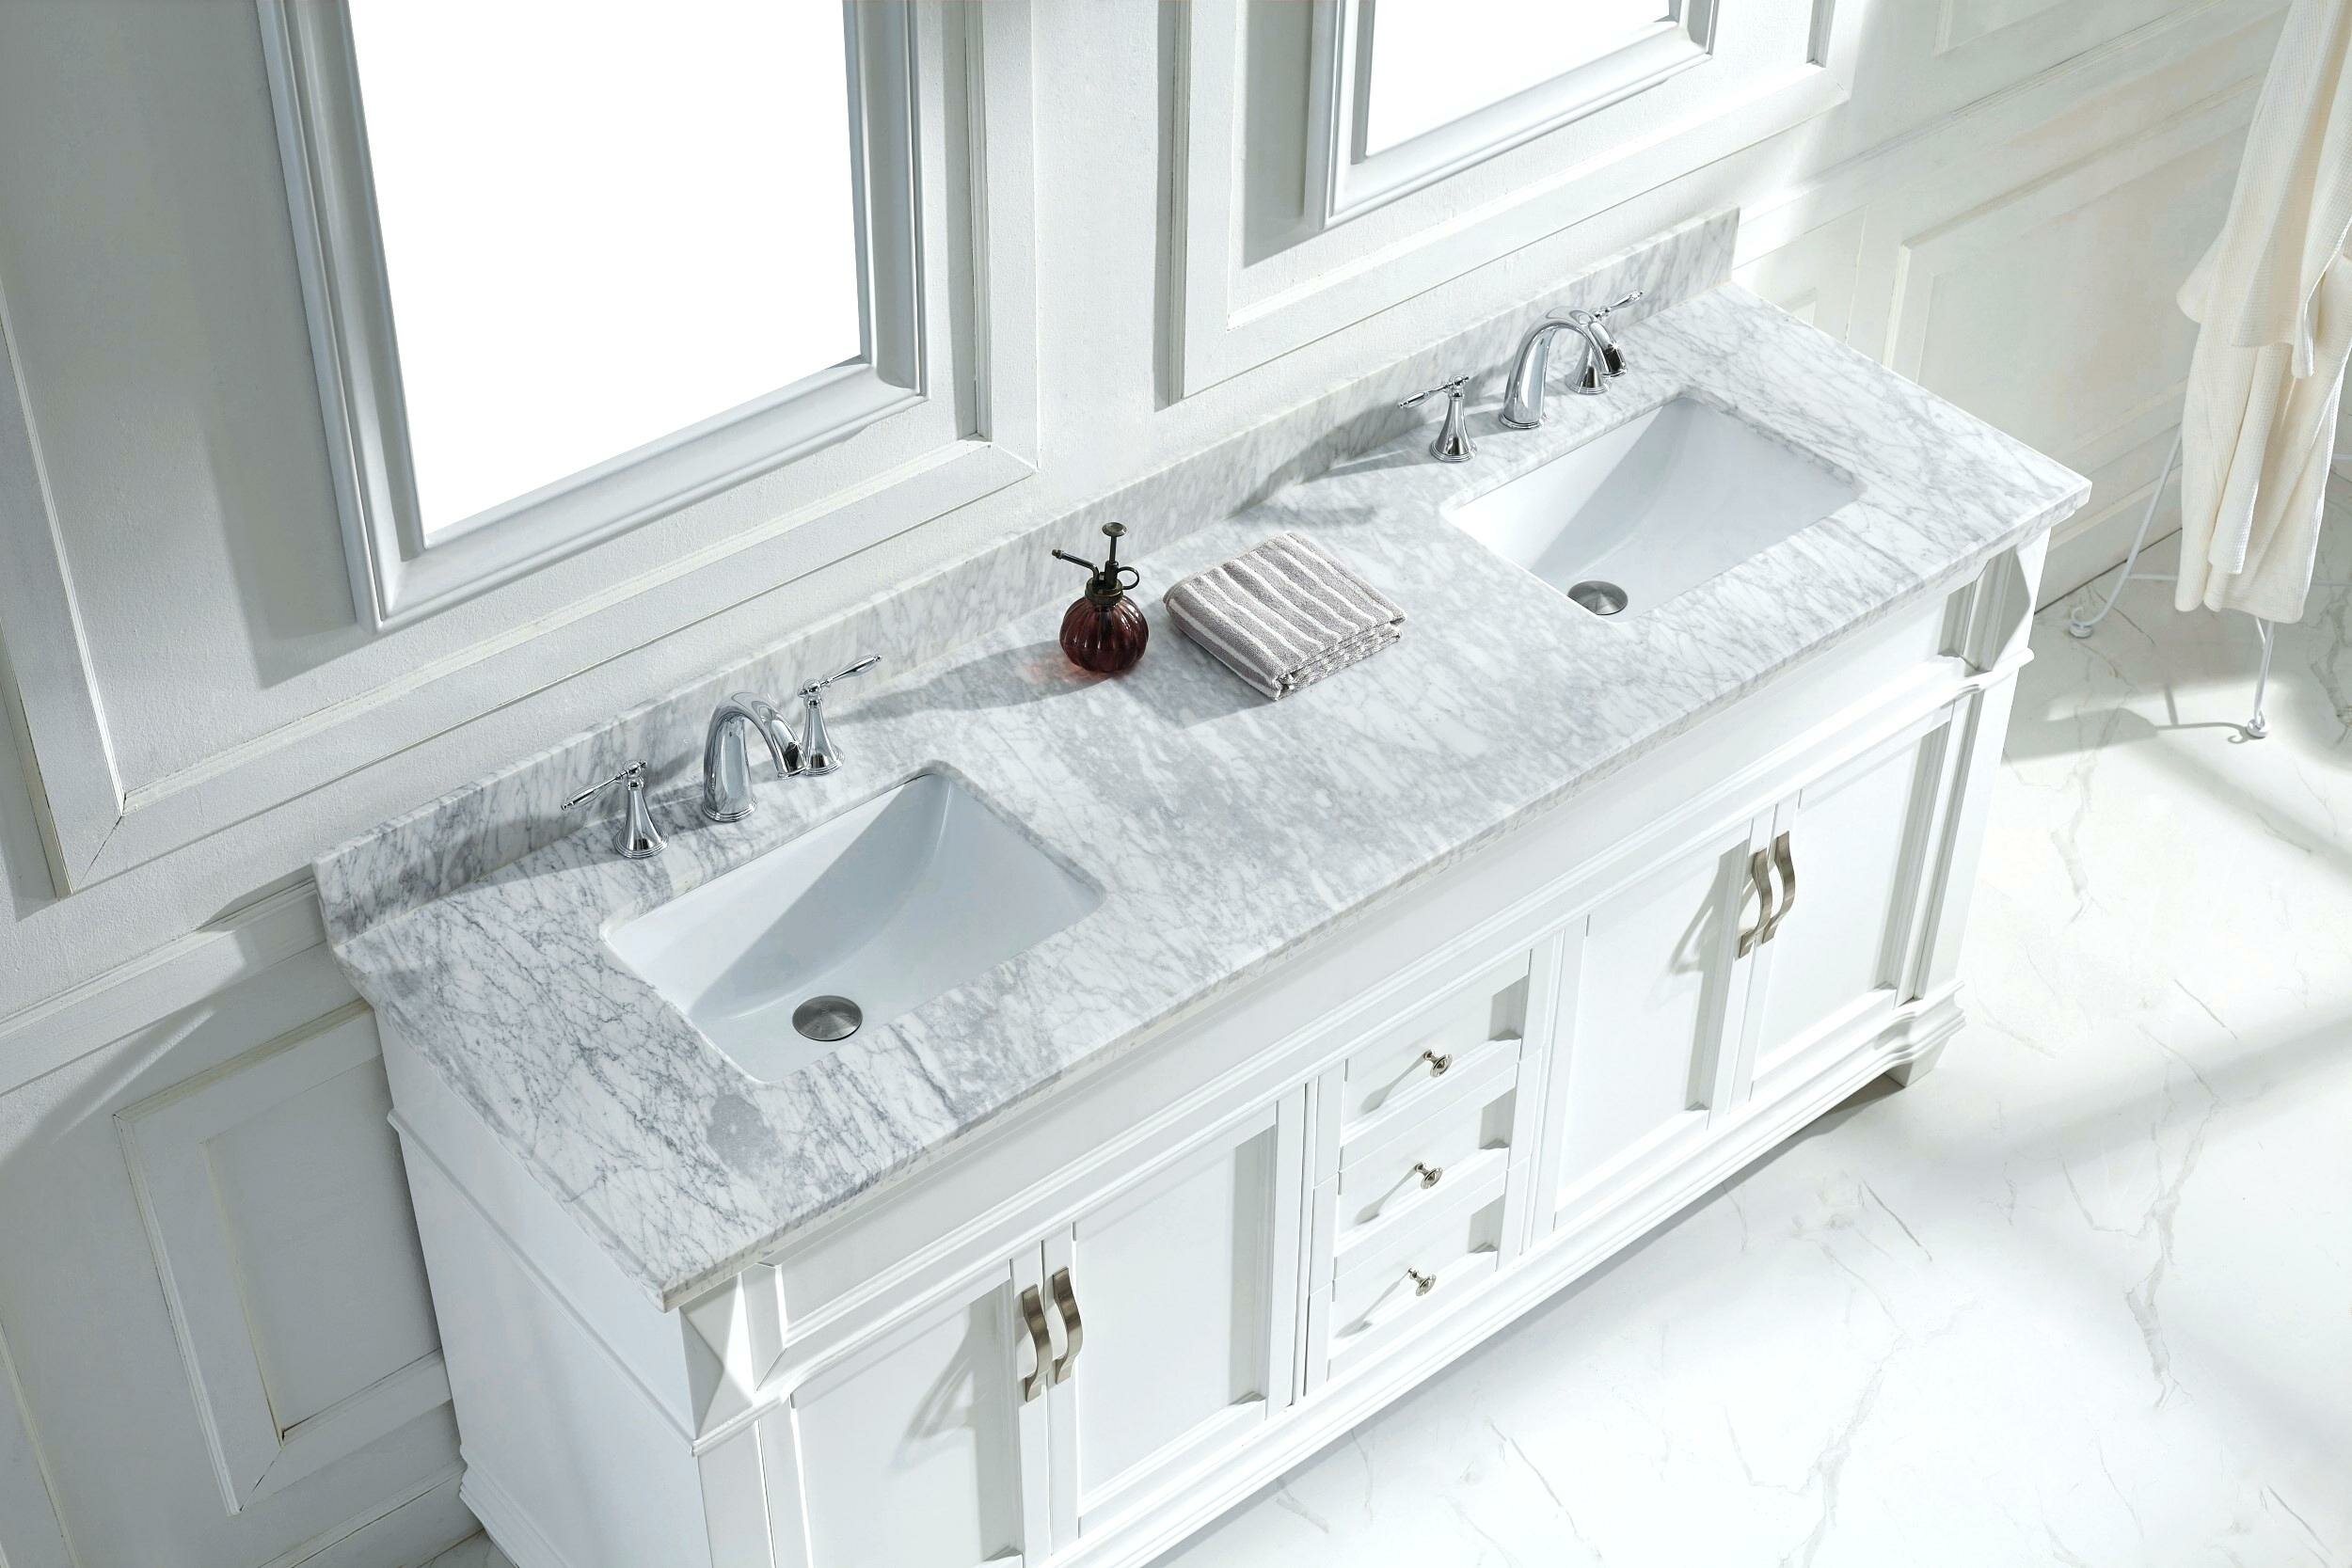 Pottery Barn Vanity | 54 Inch Bathroom Vanity Single Sink | Farmhouse Bathroom Vanity